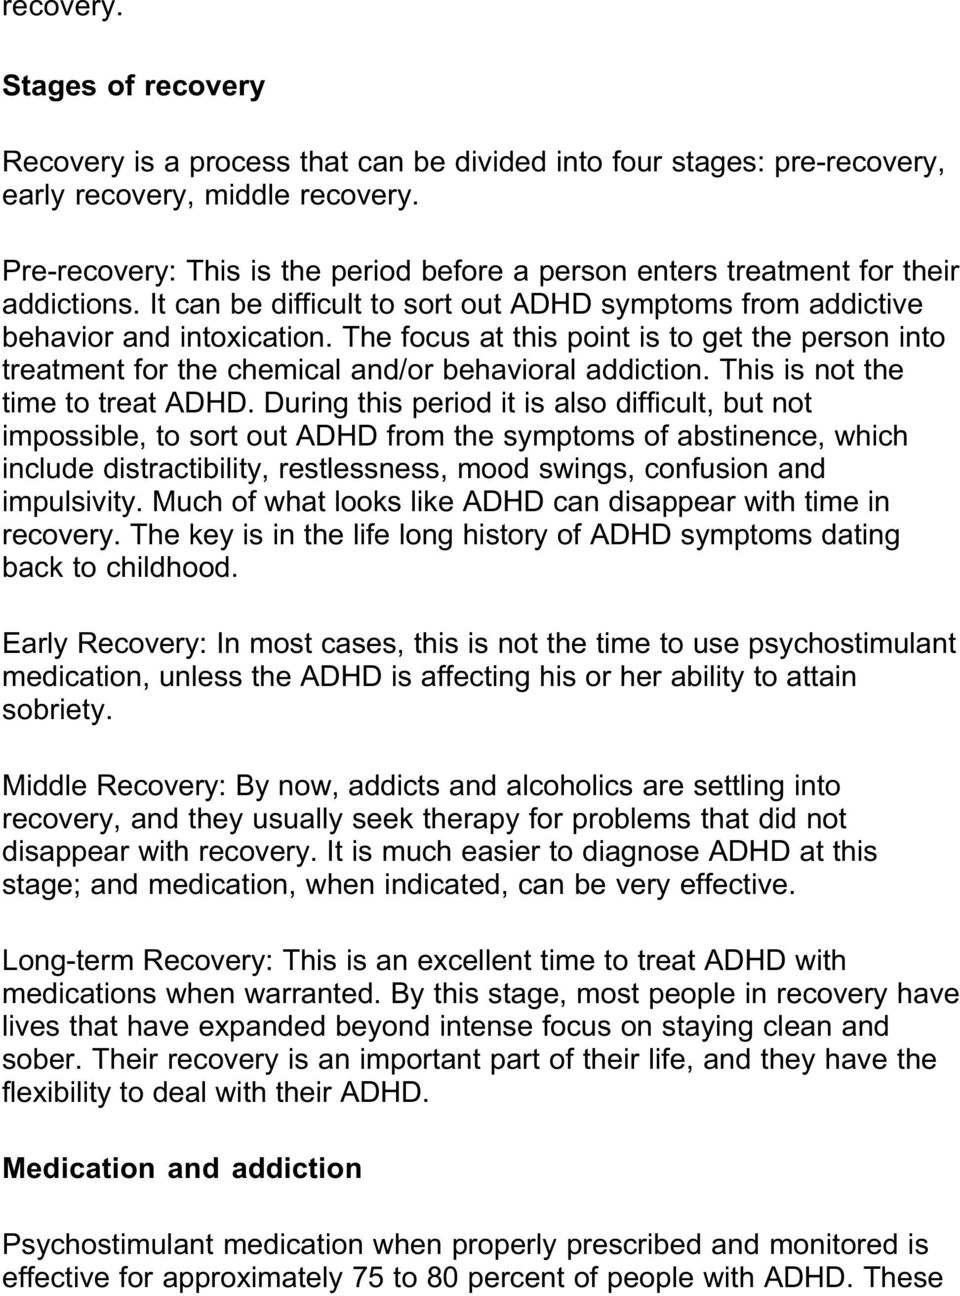 The focus at this point is to get the person into treatment for the chemical and/or behavioral addiction. This is not the time to treat ADHD.